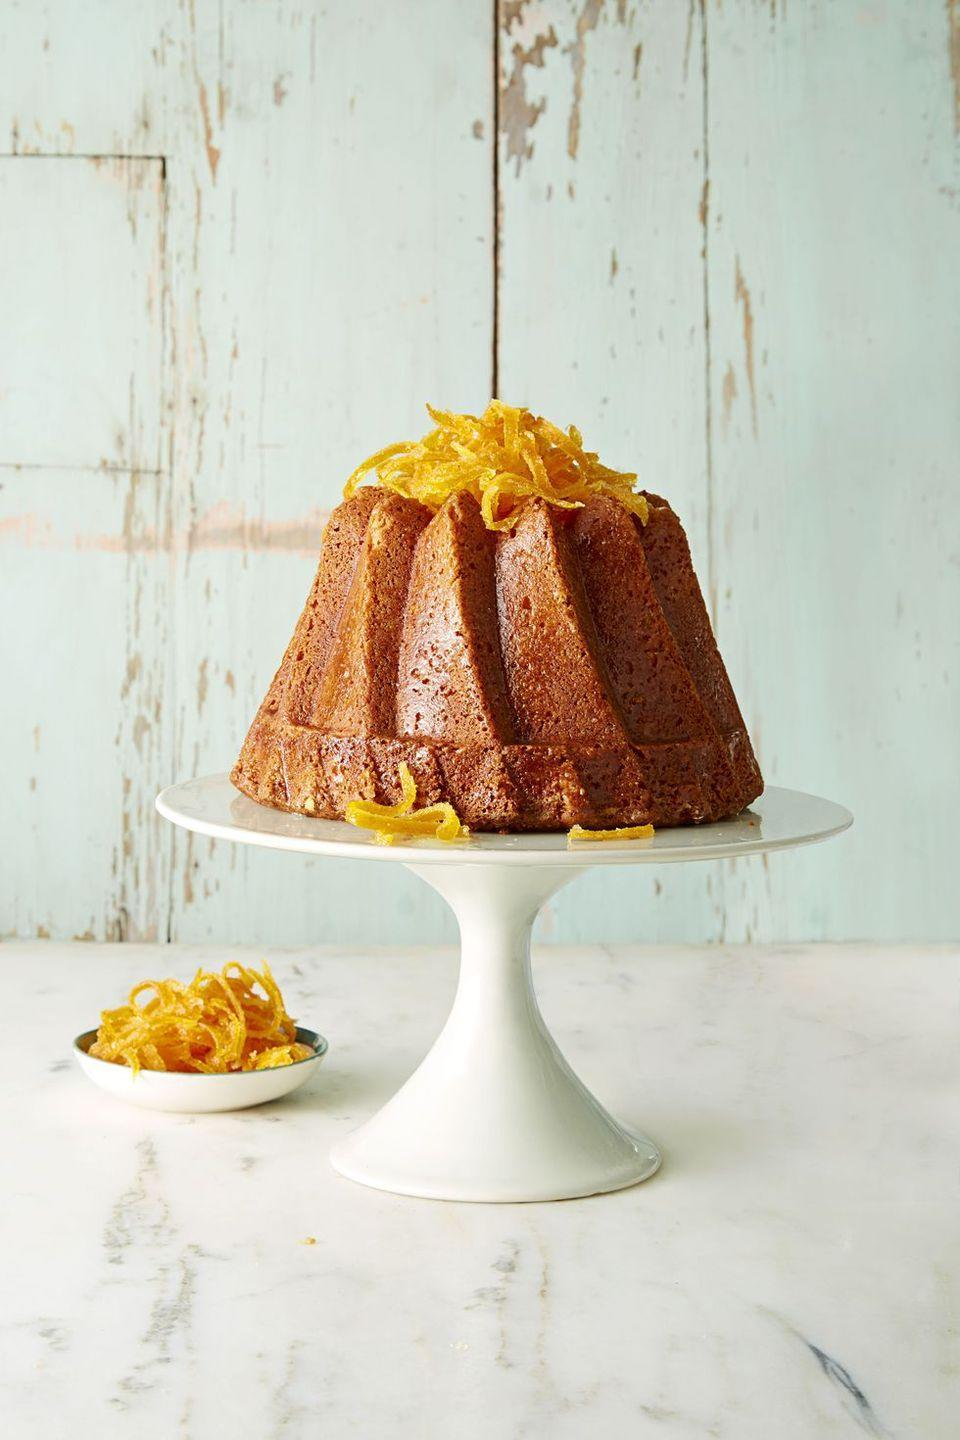 "<p>Perfect for indecisive bakers, this cake seamlessly blends fresh lemon, lime, and orange flavors. </p><p><em><a href=""https://www.goodhousekeeping.com/food-recipes/dessert/a38286/triple-citrus-bundt-recipe/"" rel=""nofollow noopener"" target=""_blank"" data-ylk=""slk:Get the recipe for Triple Citrus Bundt »"" class=""link rapid-noclick-resp"">Get the recipe for Triple Citrus Bundt »</a></em></p>"